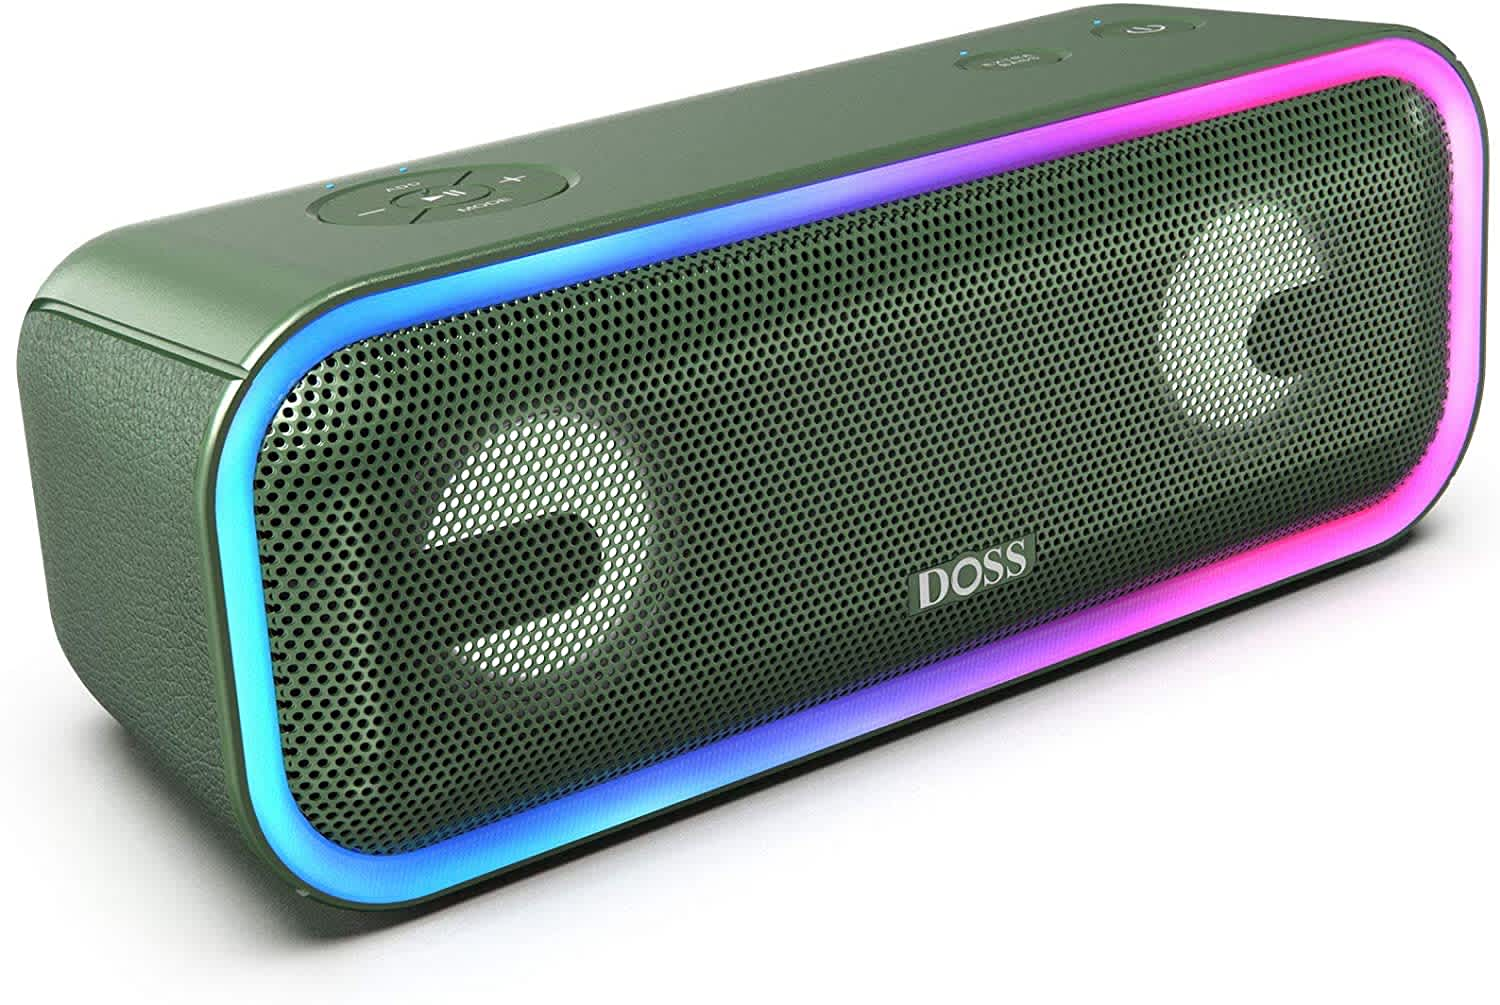 DOSS Bluetooth Speakers and Ture Wireless Earbuds at Amazon